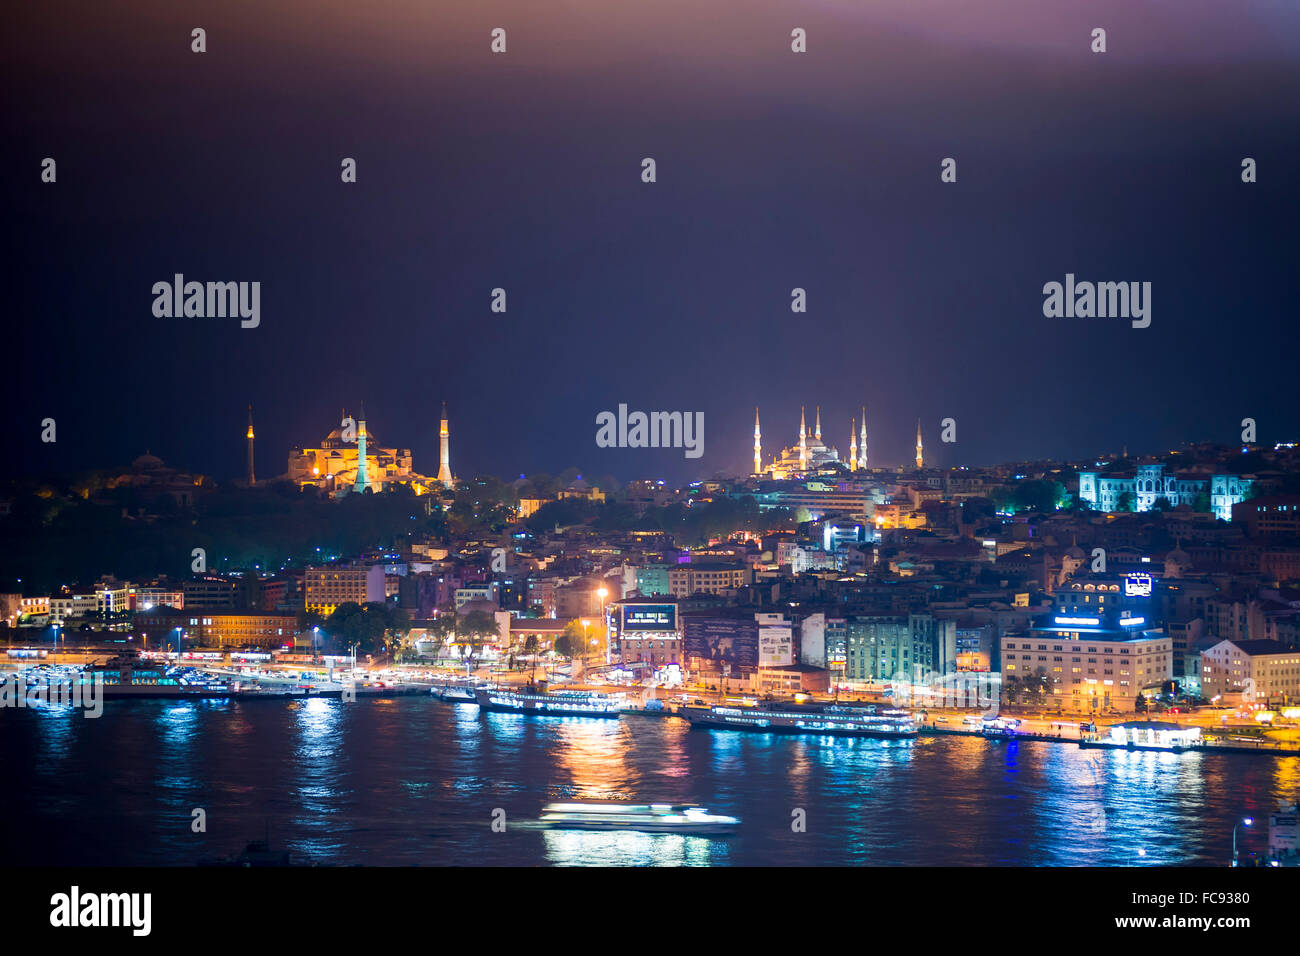 Blue Mosque and Hagia Sophia (Aya Sofya) at night seen from The Galata Tower across the Bosphorus Strait, Istanbul, - Stock Image